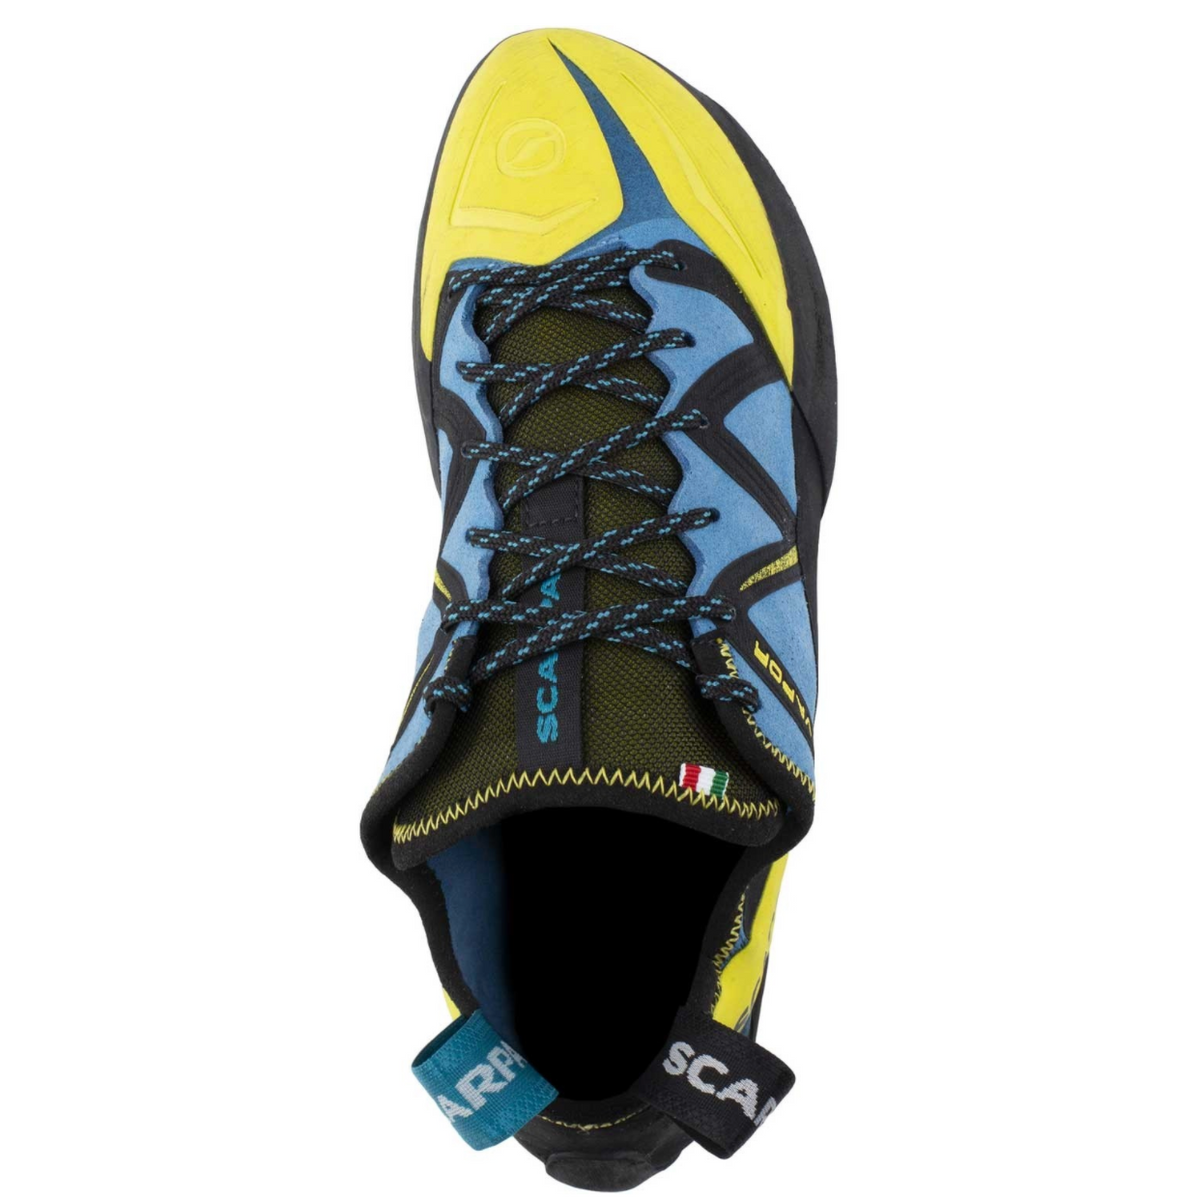 Scarpa Vapour Lace climbing shoe in blue and yellow overview